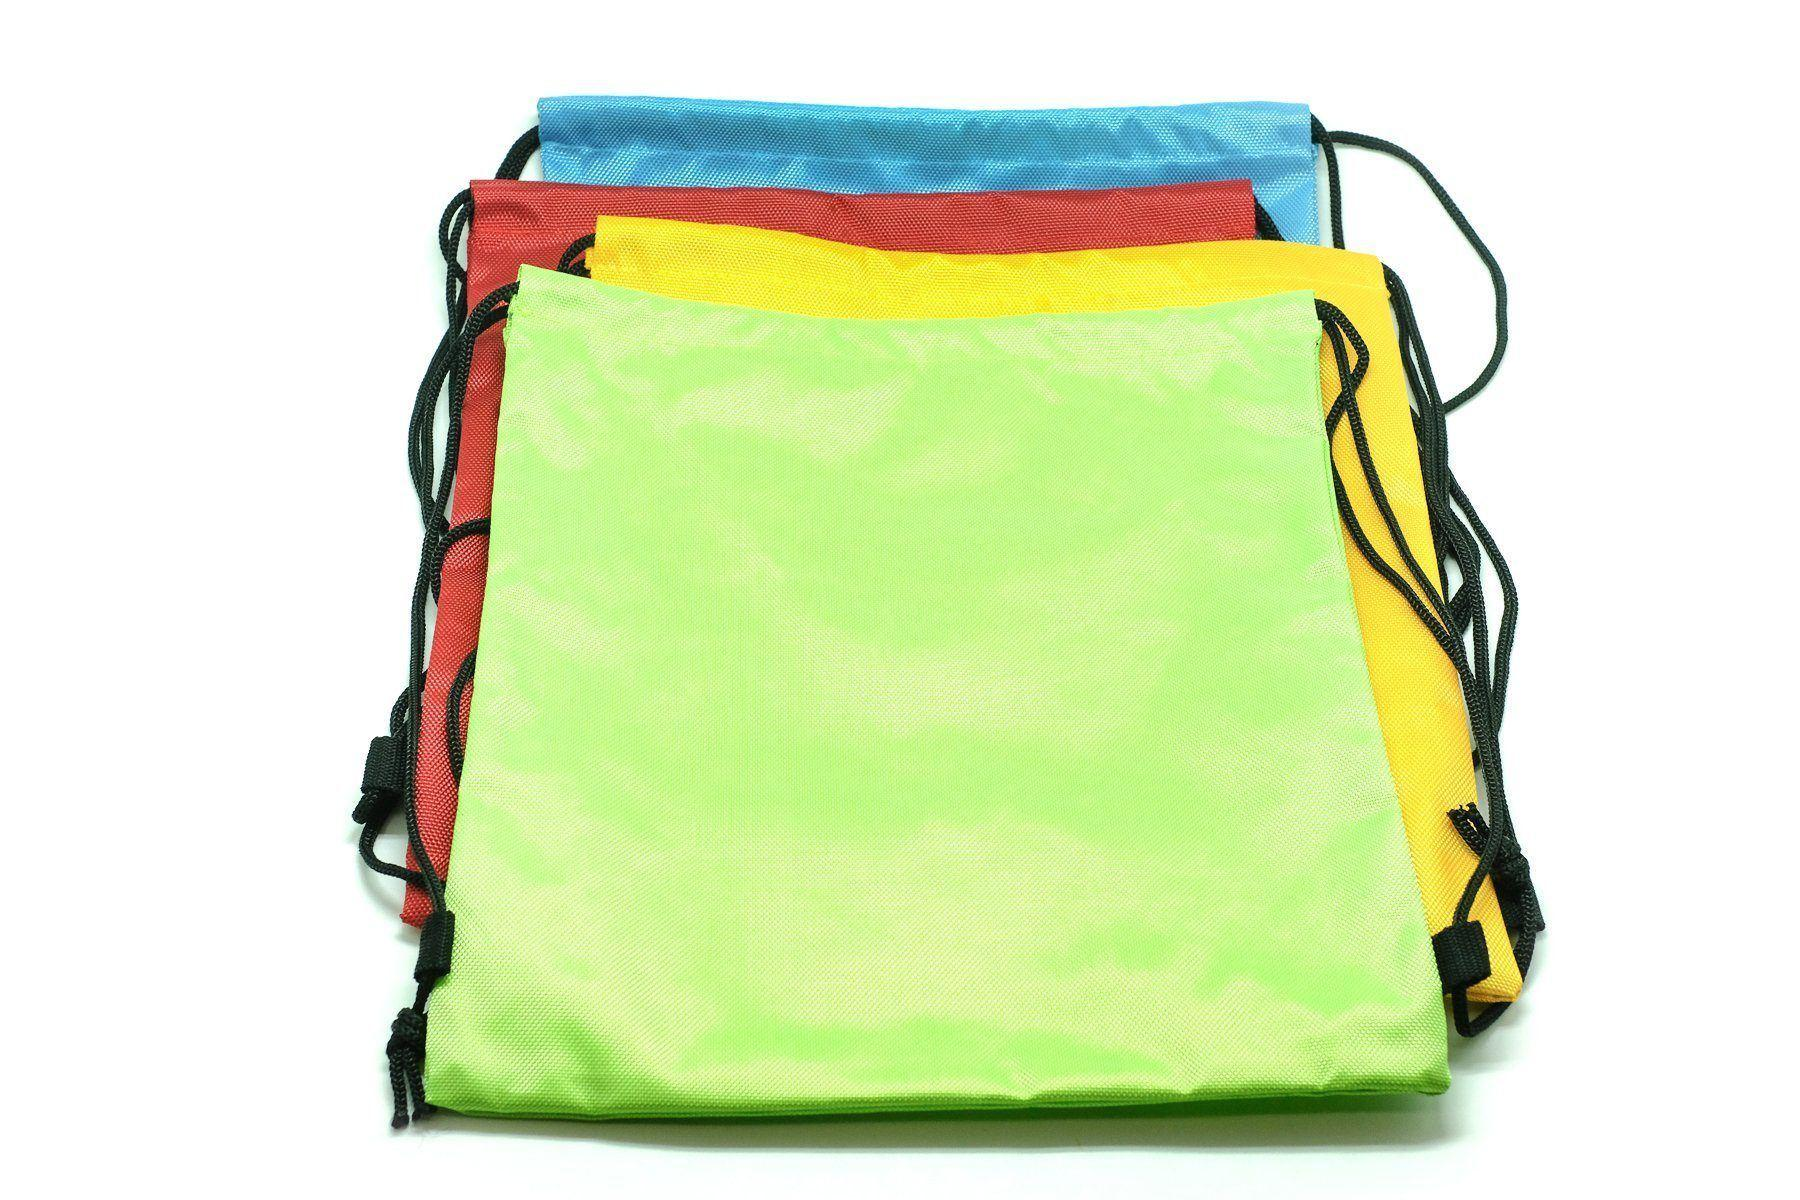 Premium Quality Nylon Drawstring Activity Bag Corporate Gift Ideas,Printable/Customizable,Pencil Cases/Bags OneDollarOnly